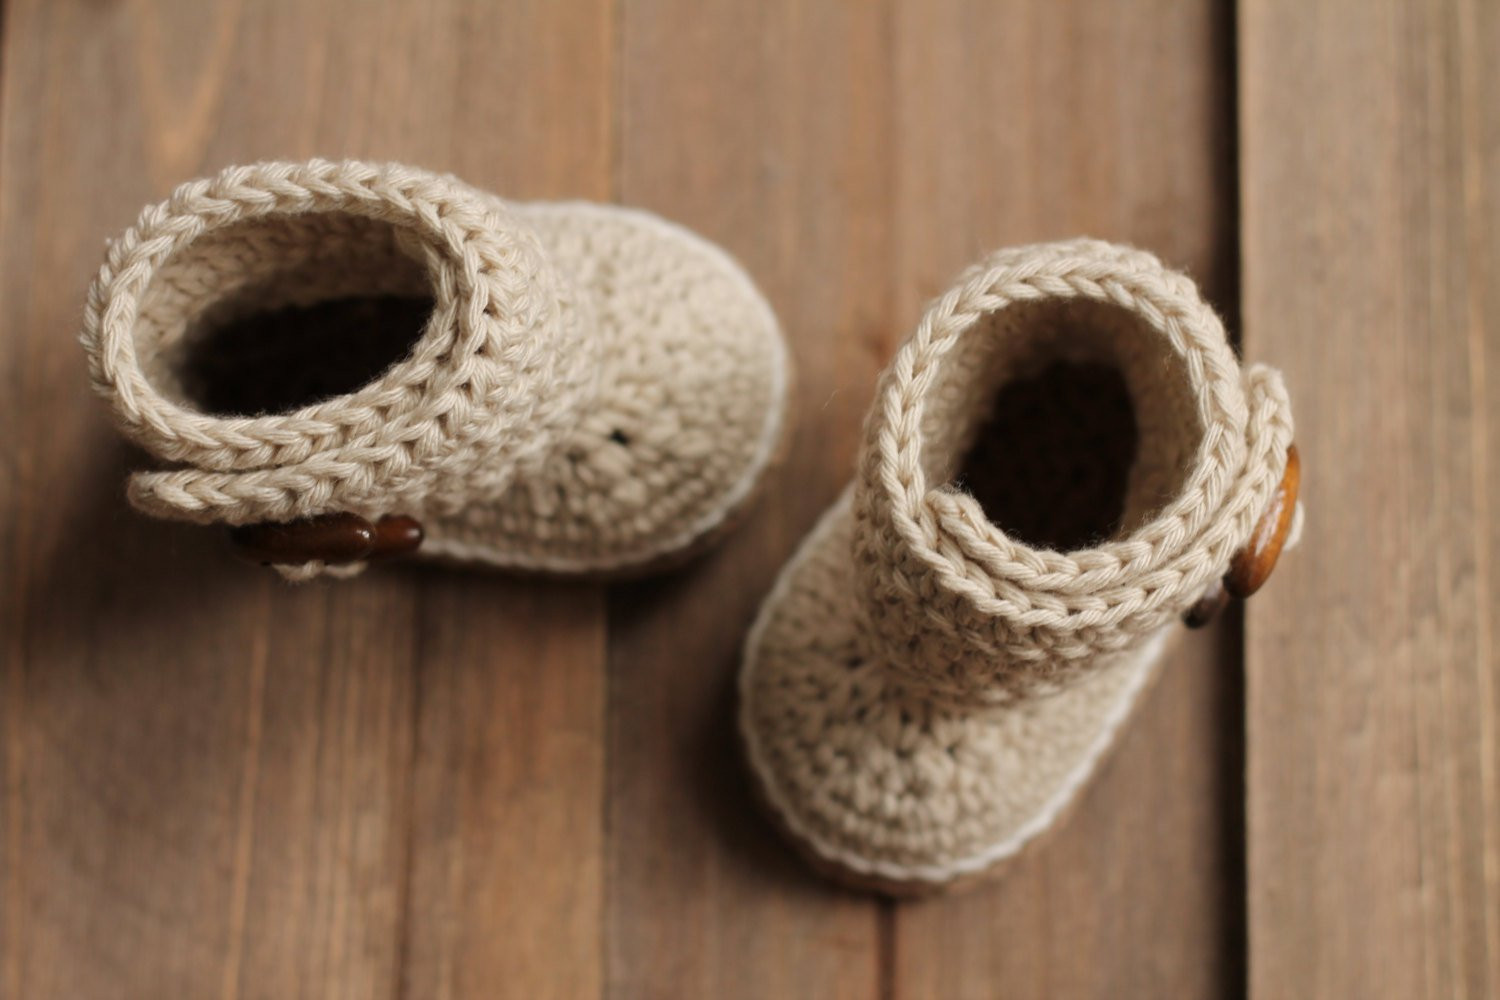 Unique Crochet Baby Booties Pattern In Crochet Baby Crochet Baby Slippers Of Marvelous 50 Images Crochet Baby Slippers